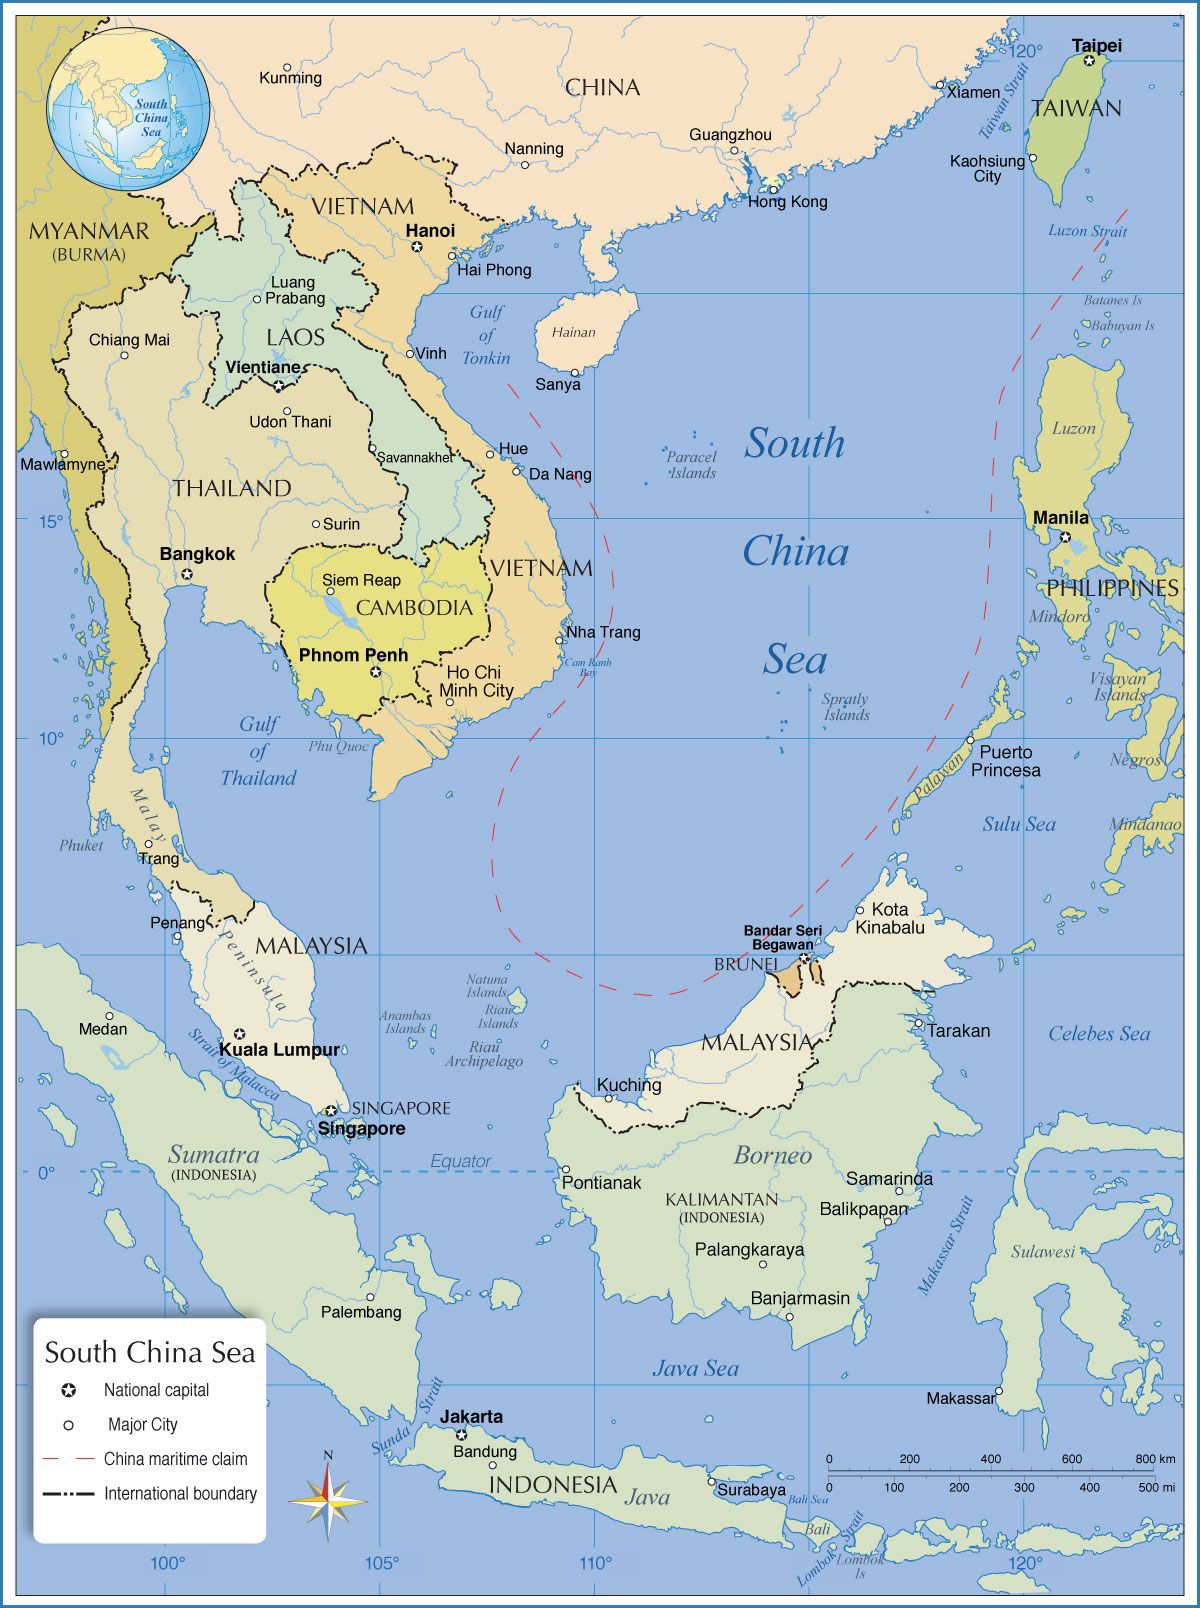 Map of South China Sea | Asian maps in 2019 | Map, World map ... China Philippines Map on